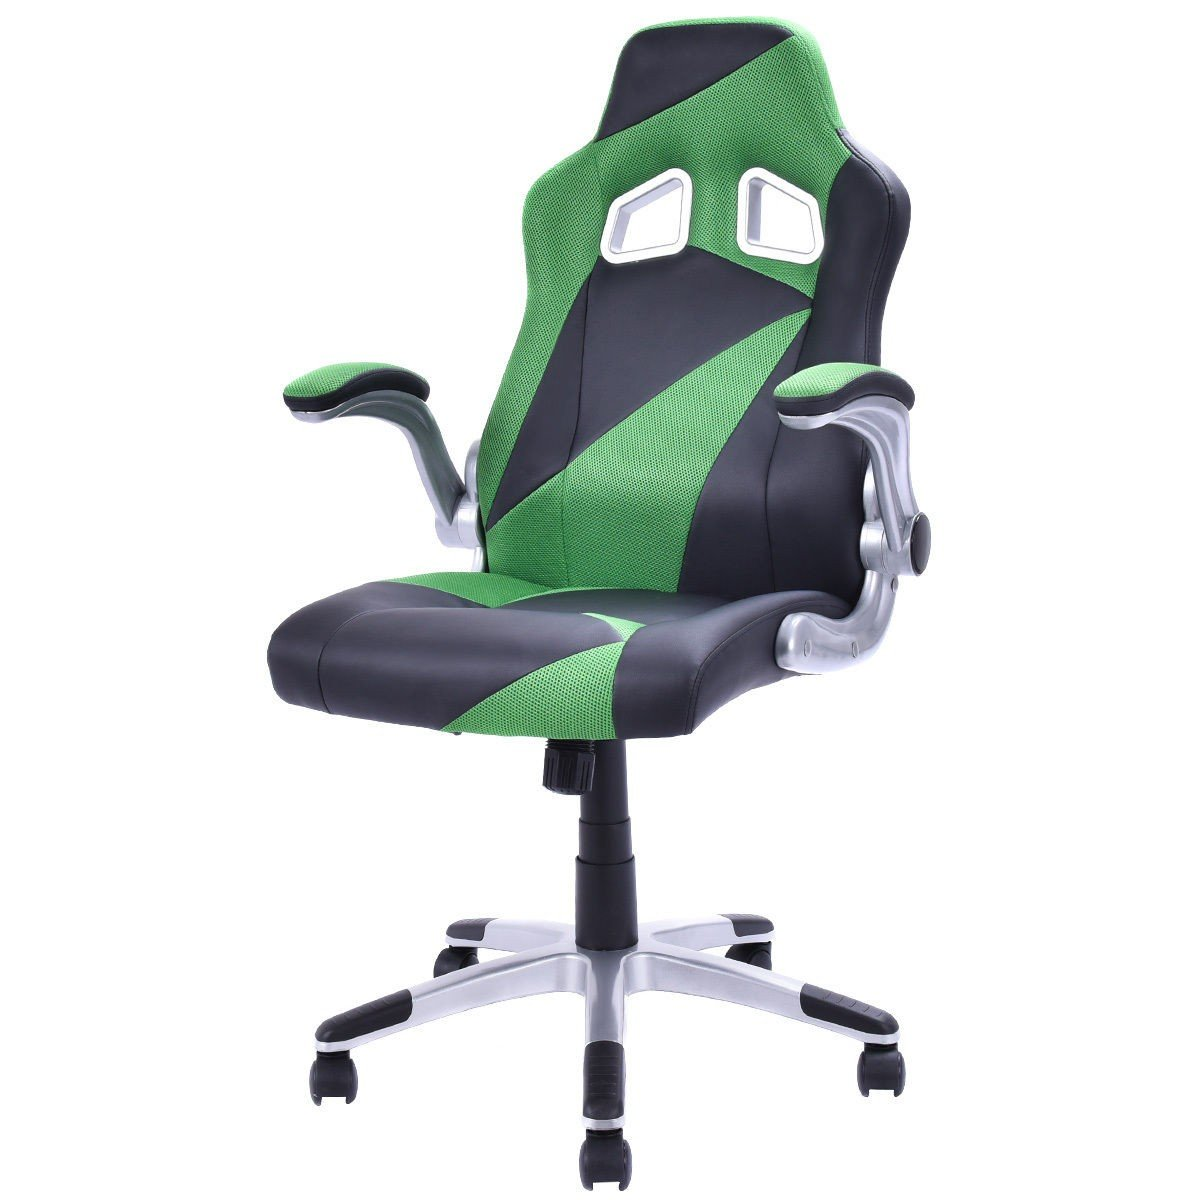 PU Leather Executive Racing Style Bucket Seat Office Chair Desk Task Computer 5 Color - 5 Wheels For Easy And Smooth Movement - Nylon Base Provides Stability And Comfort - Comfortable Seat (Green)